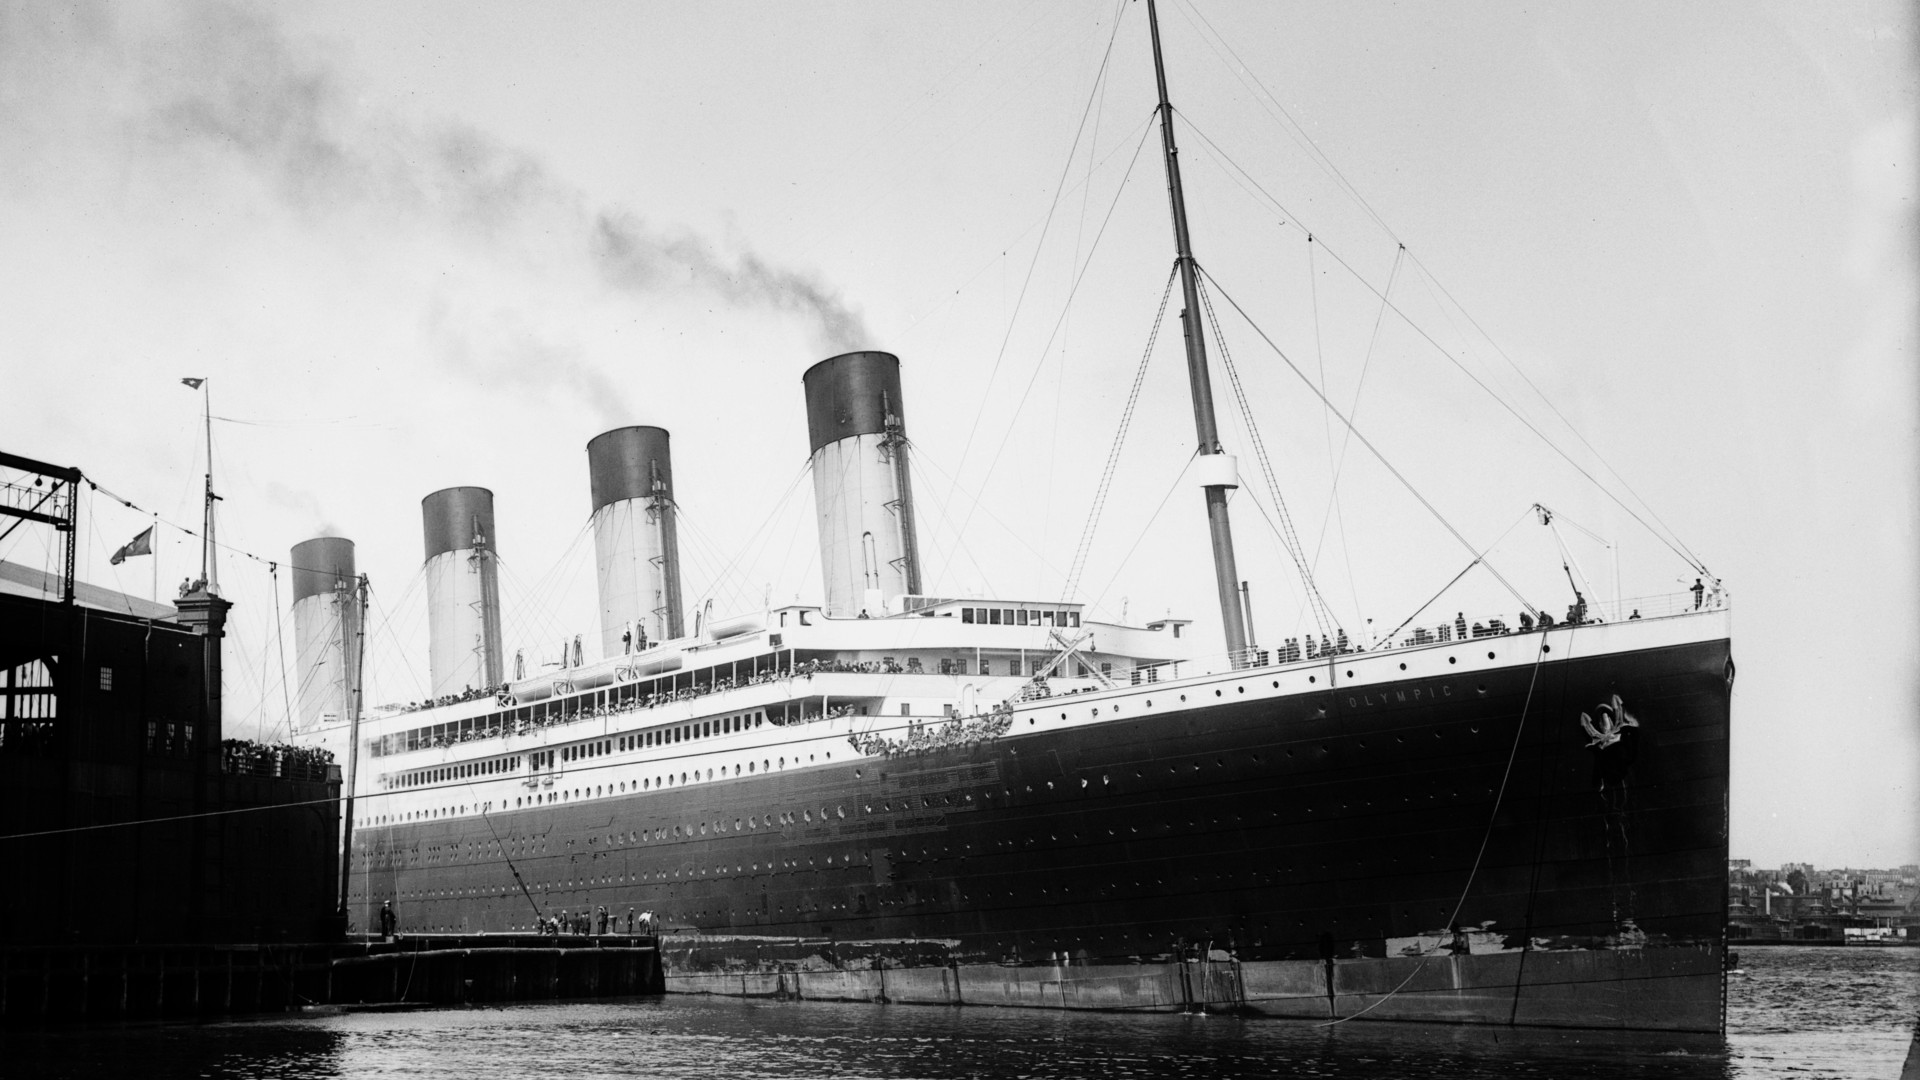 3 rms titanic hd wallpapers background images - Titanic hd wallpaper download ...